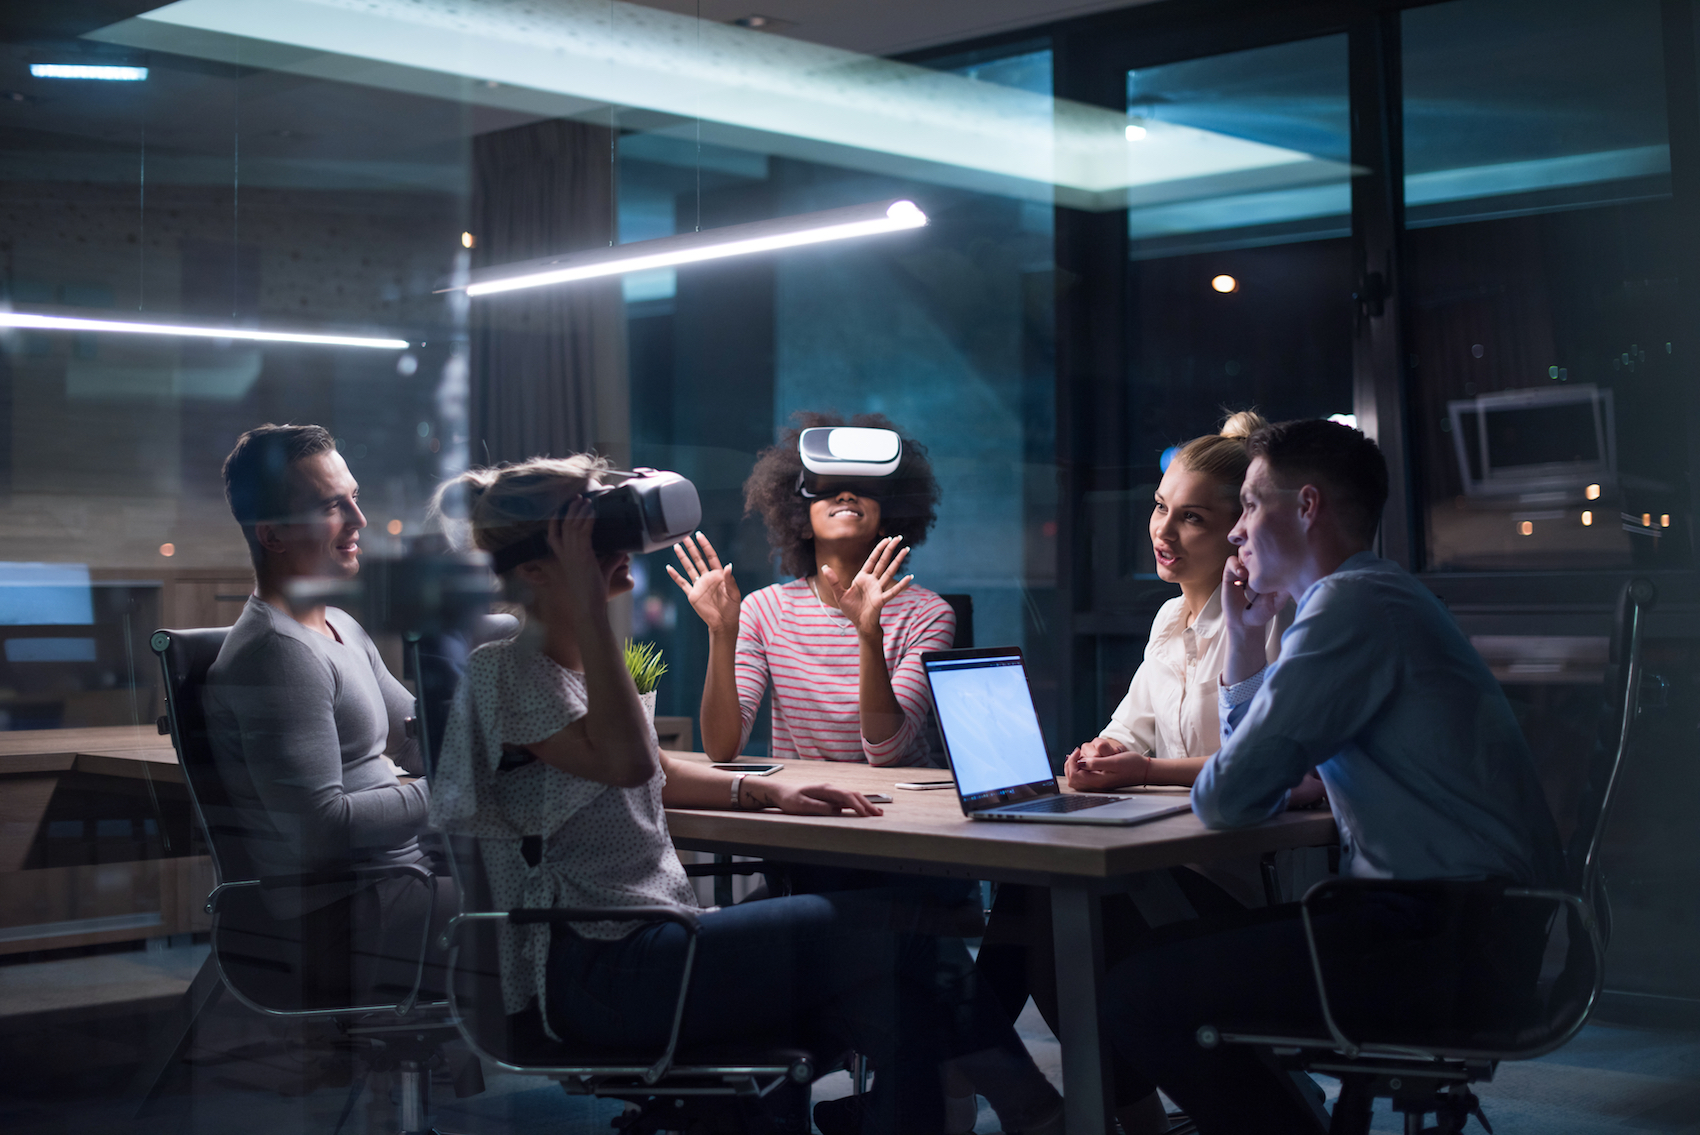 Could VR & AR be making its way into the office? TechNative